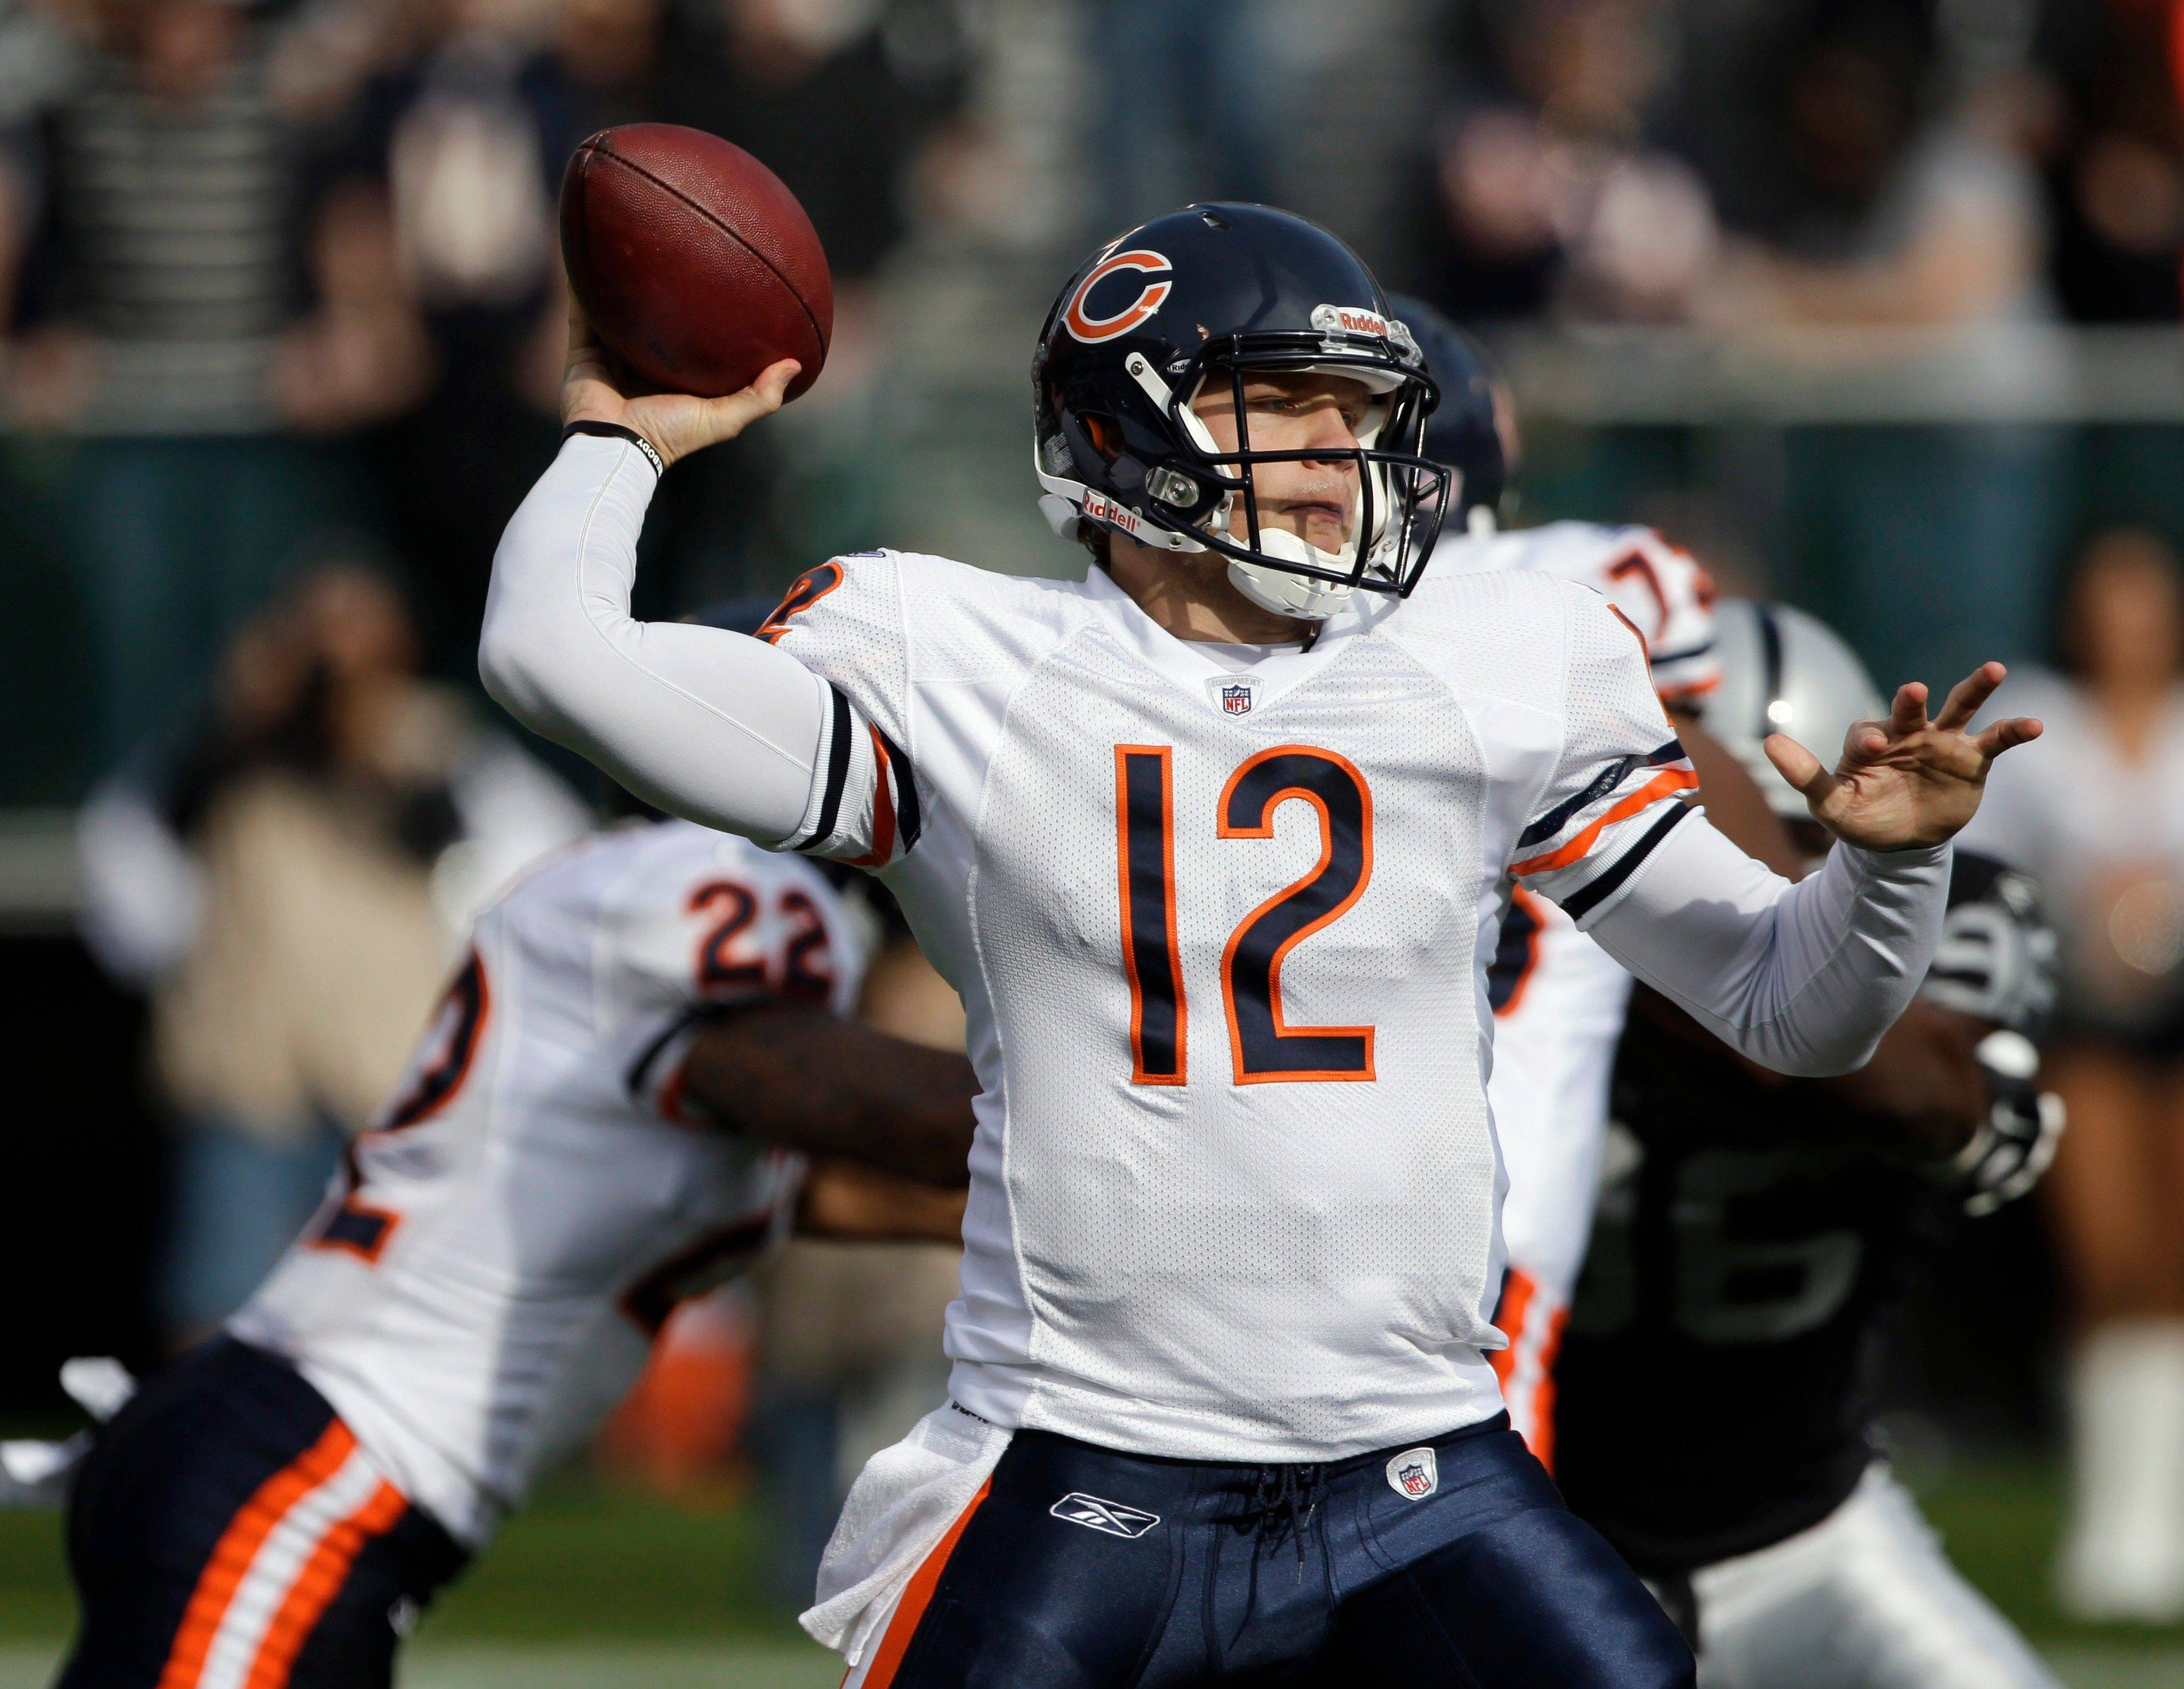 Caleb Hanie was the last quarterback to take a snap for the Bears as the 2010 season ended ... and may be again as the calendar year comes to a close.